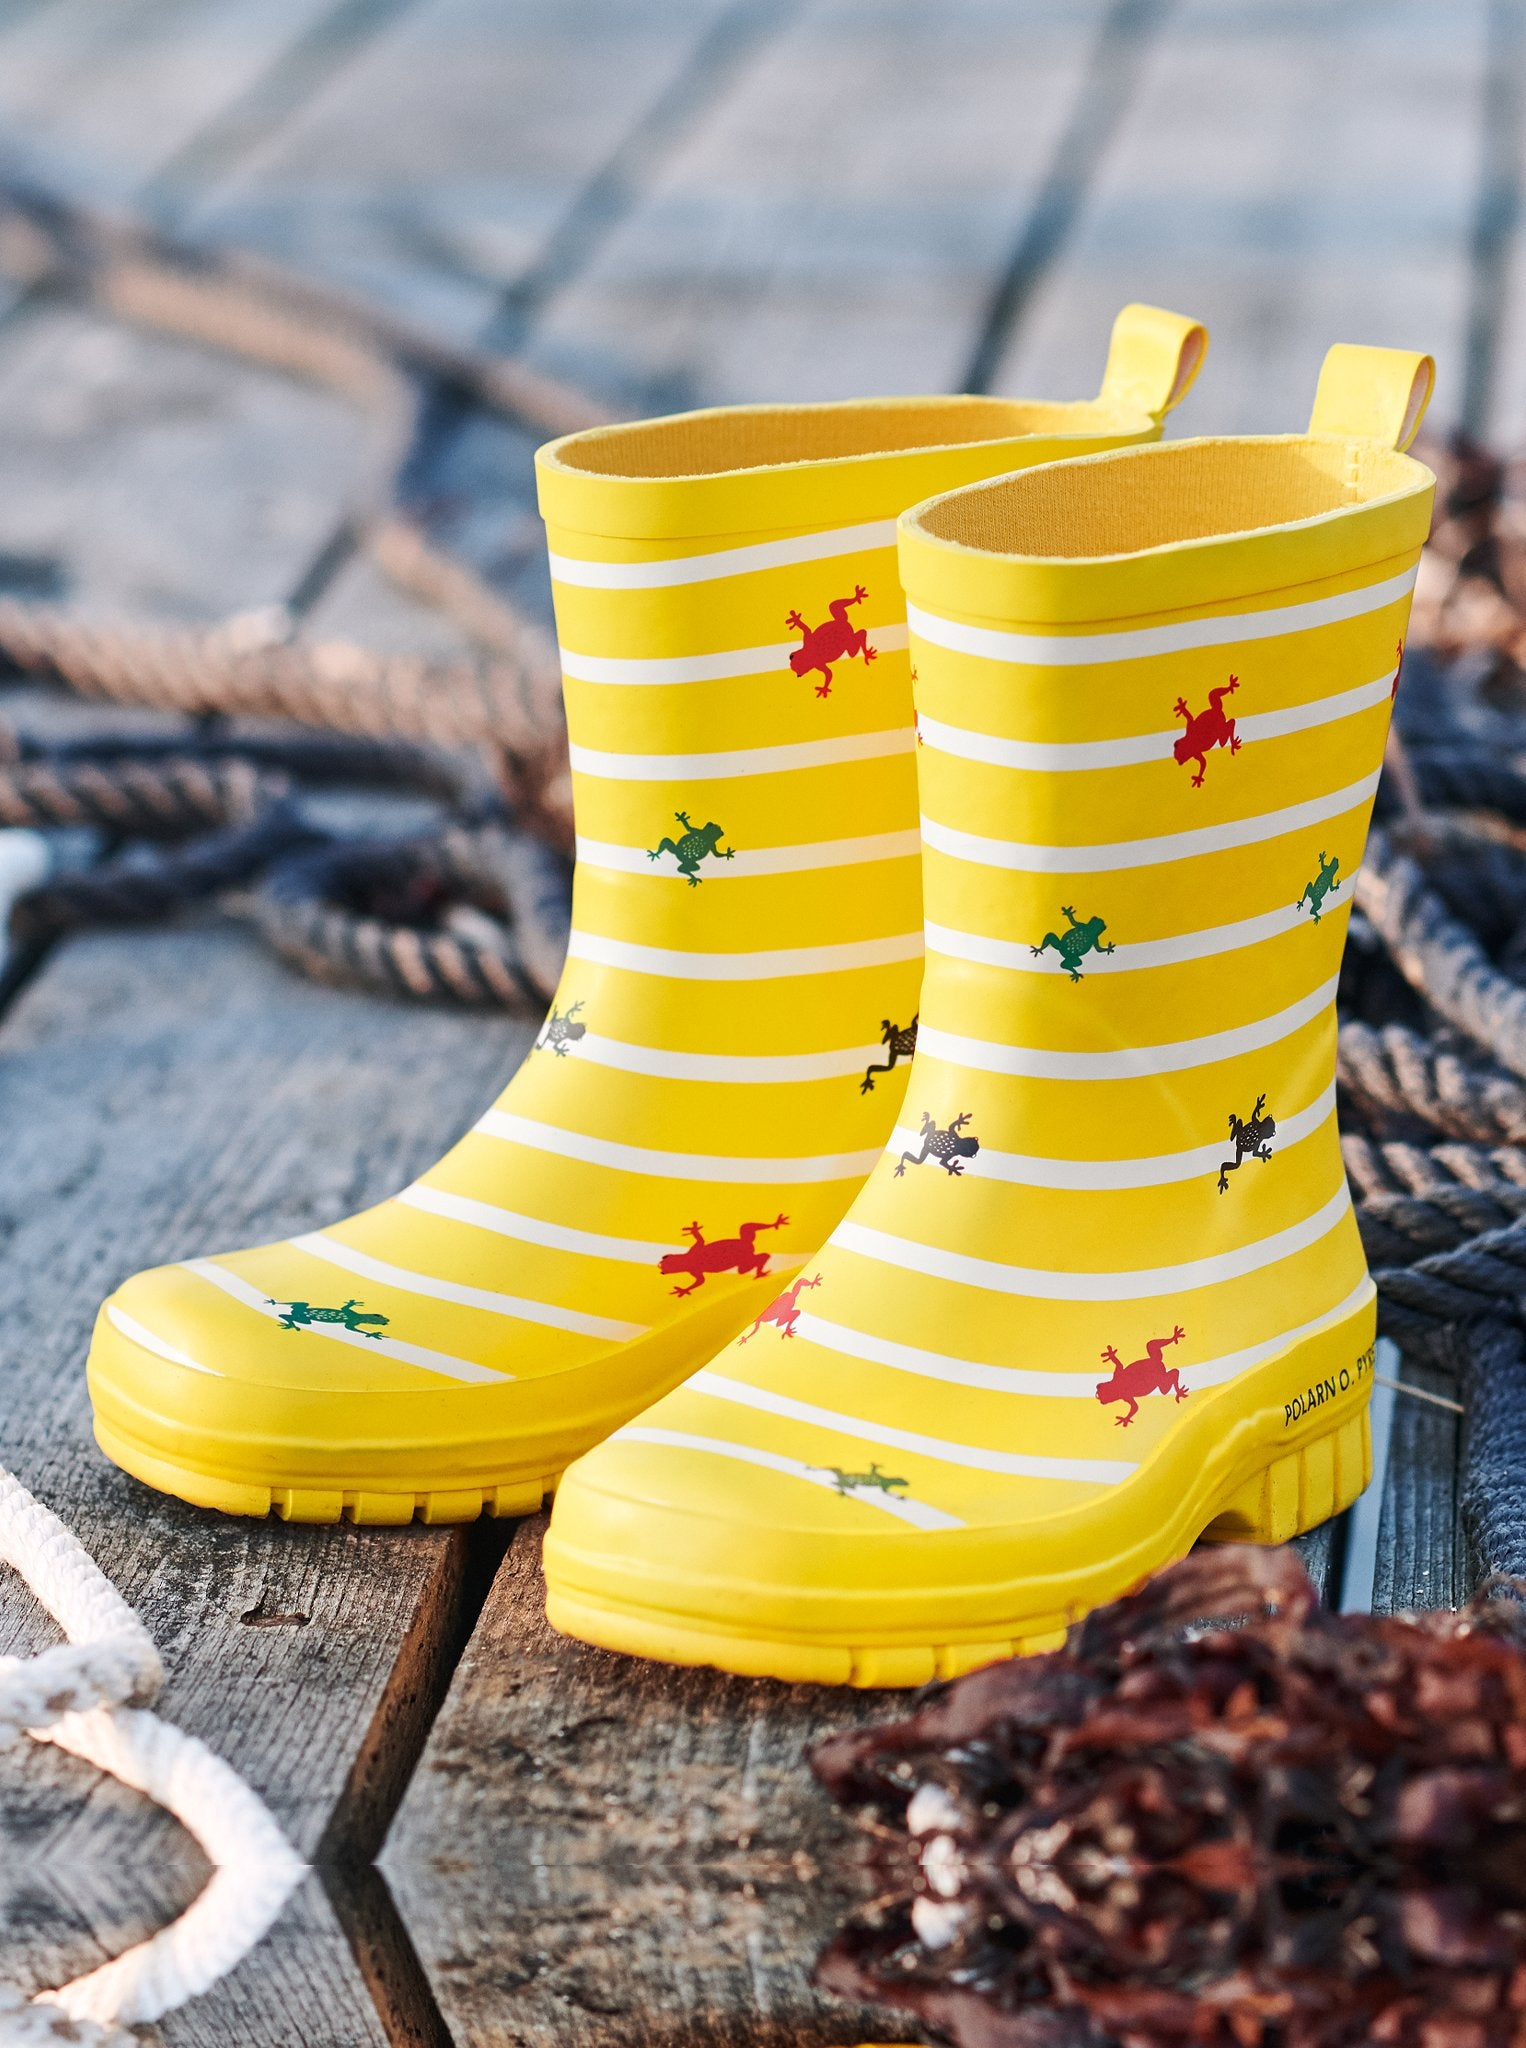 Yellow kids boots with cute frog & stripes design for rainy season, made with natural rubber and cotton for the inner lining.